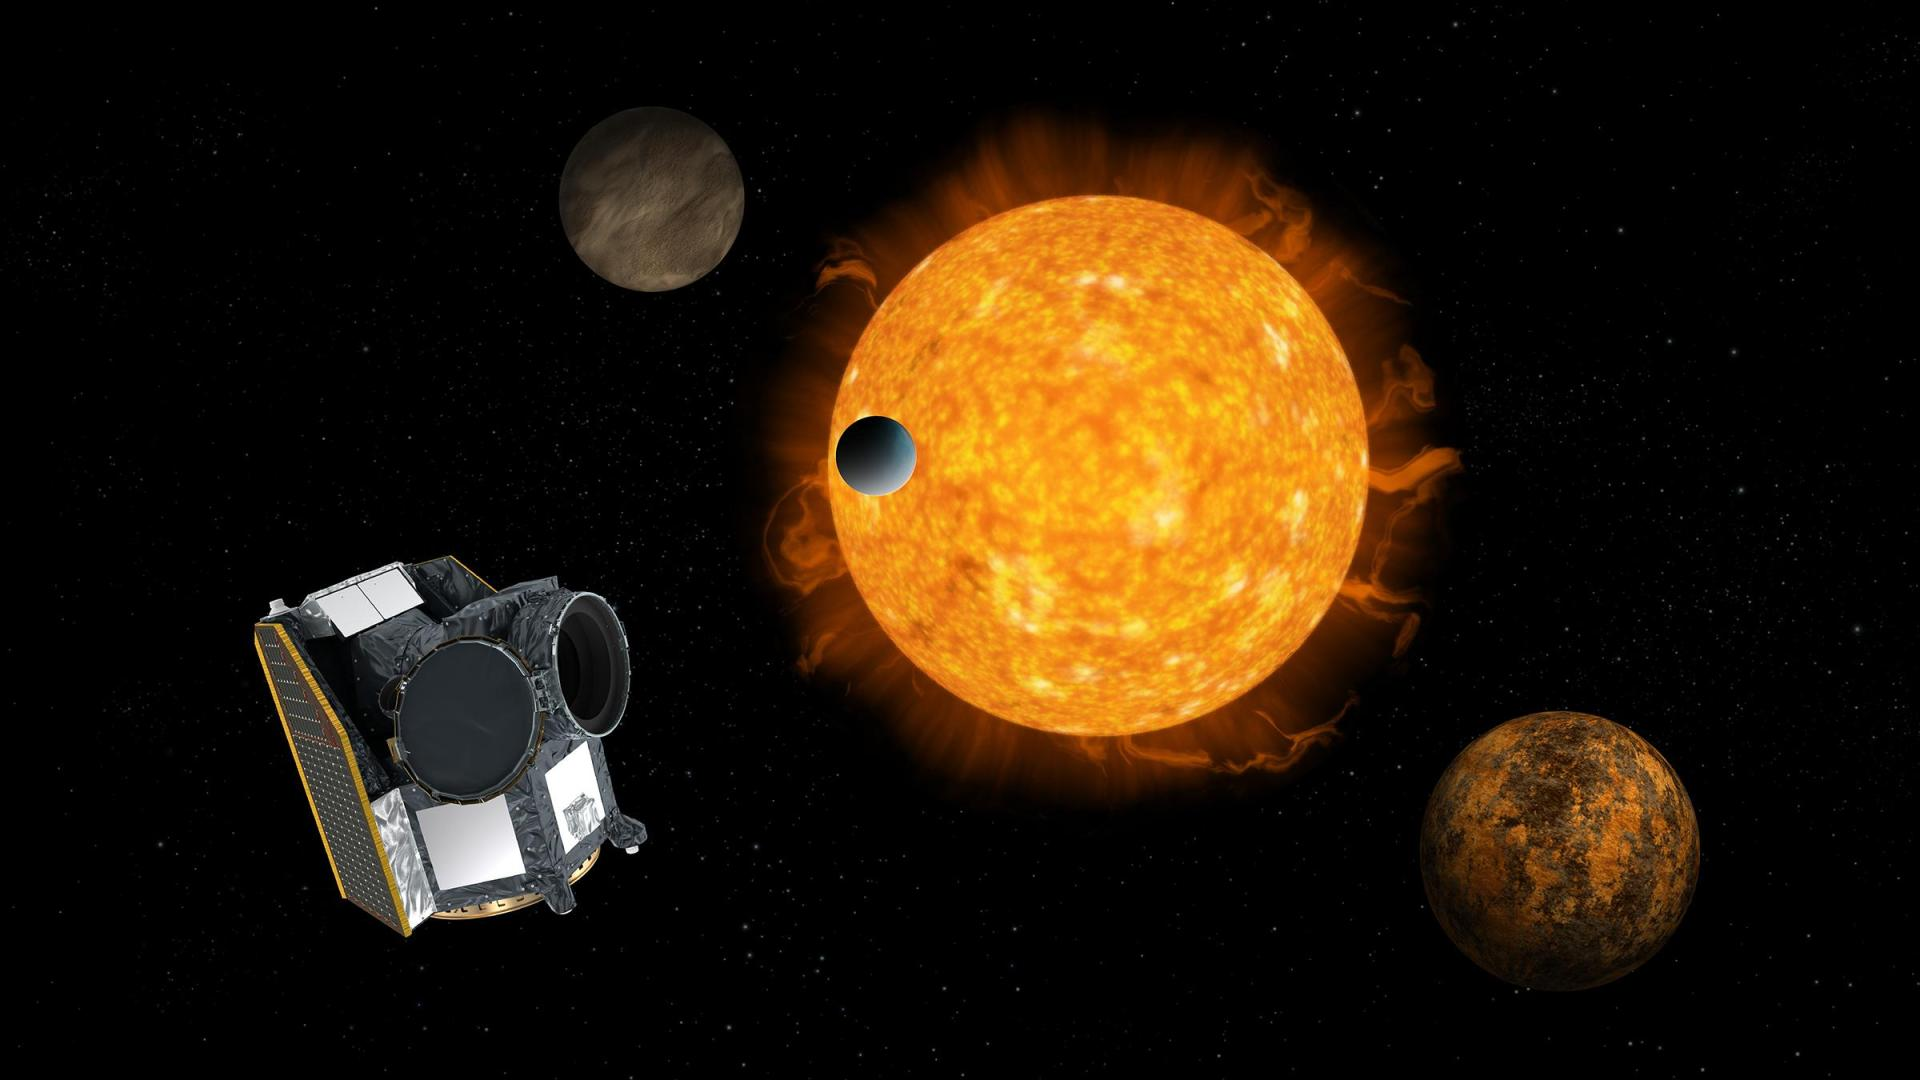 Artist's impression of CHEOPS, the characterising exoplanets satellite, with an exoplanet system in the background